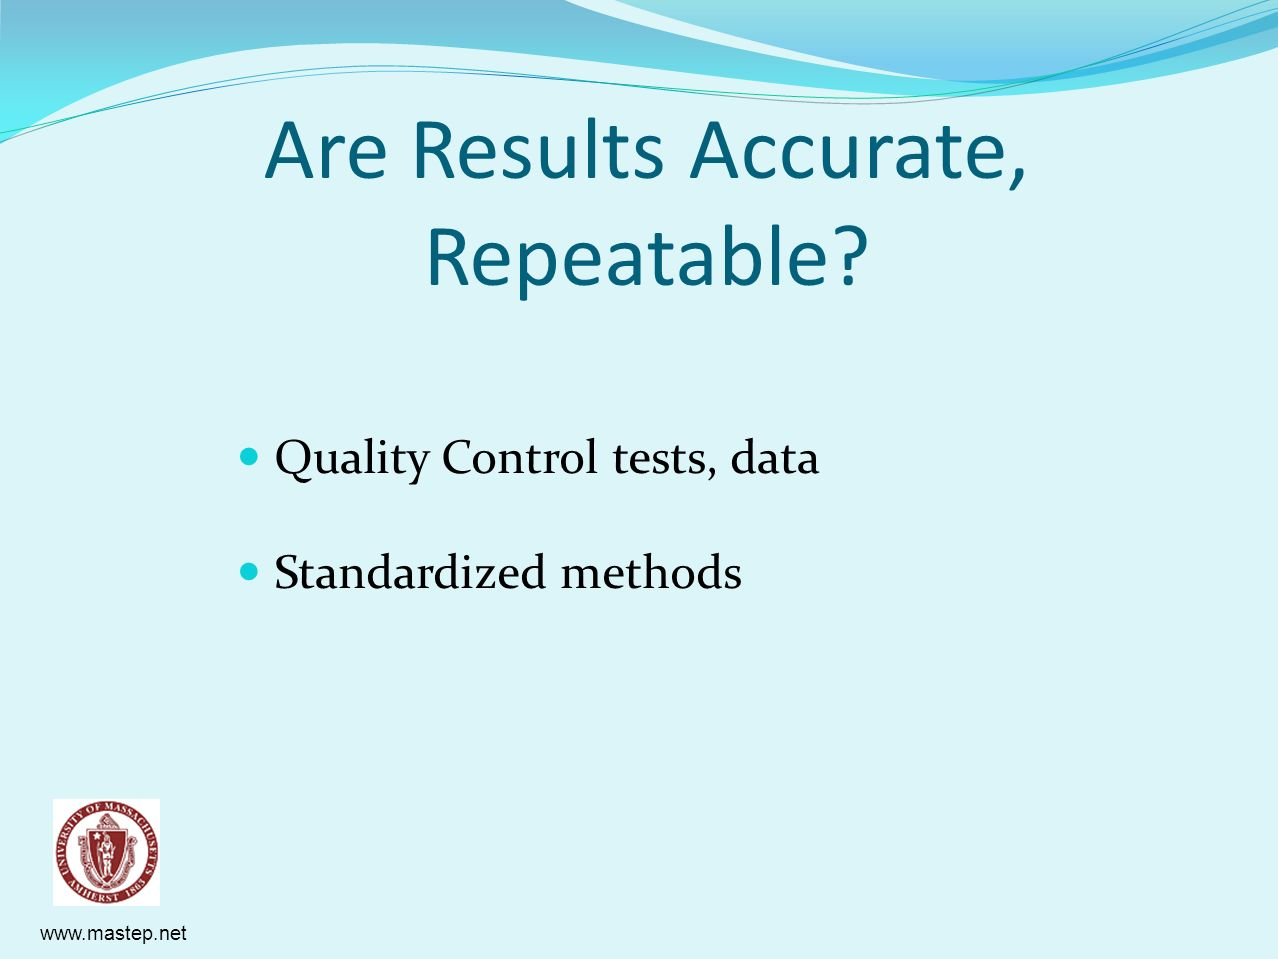 Are Results Accurate, Repeatable